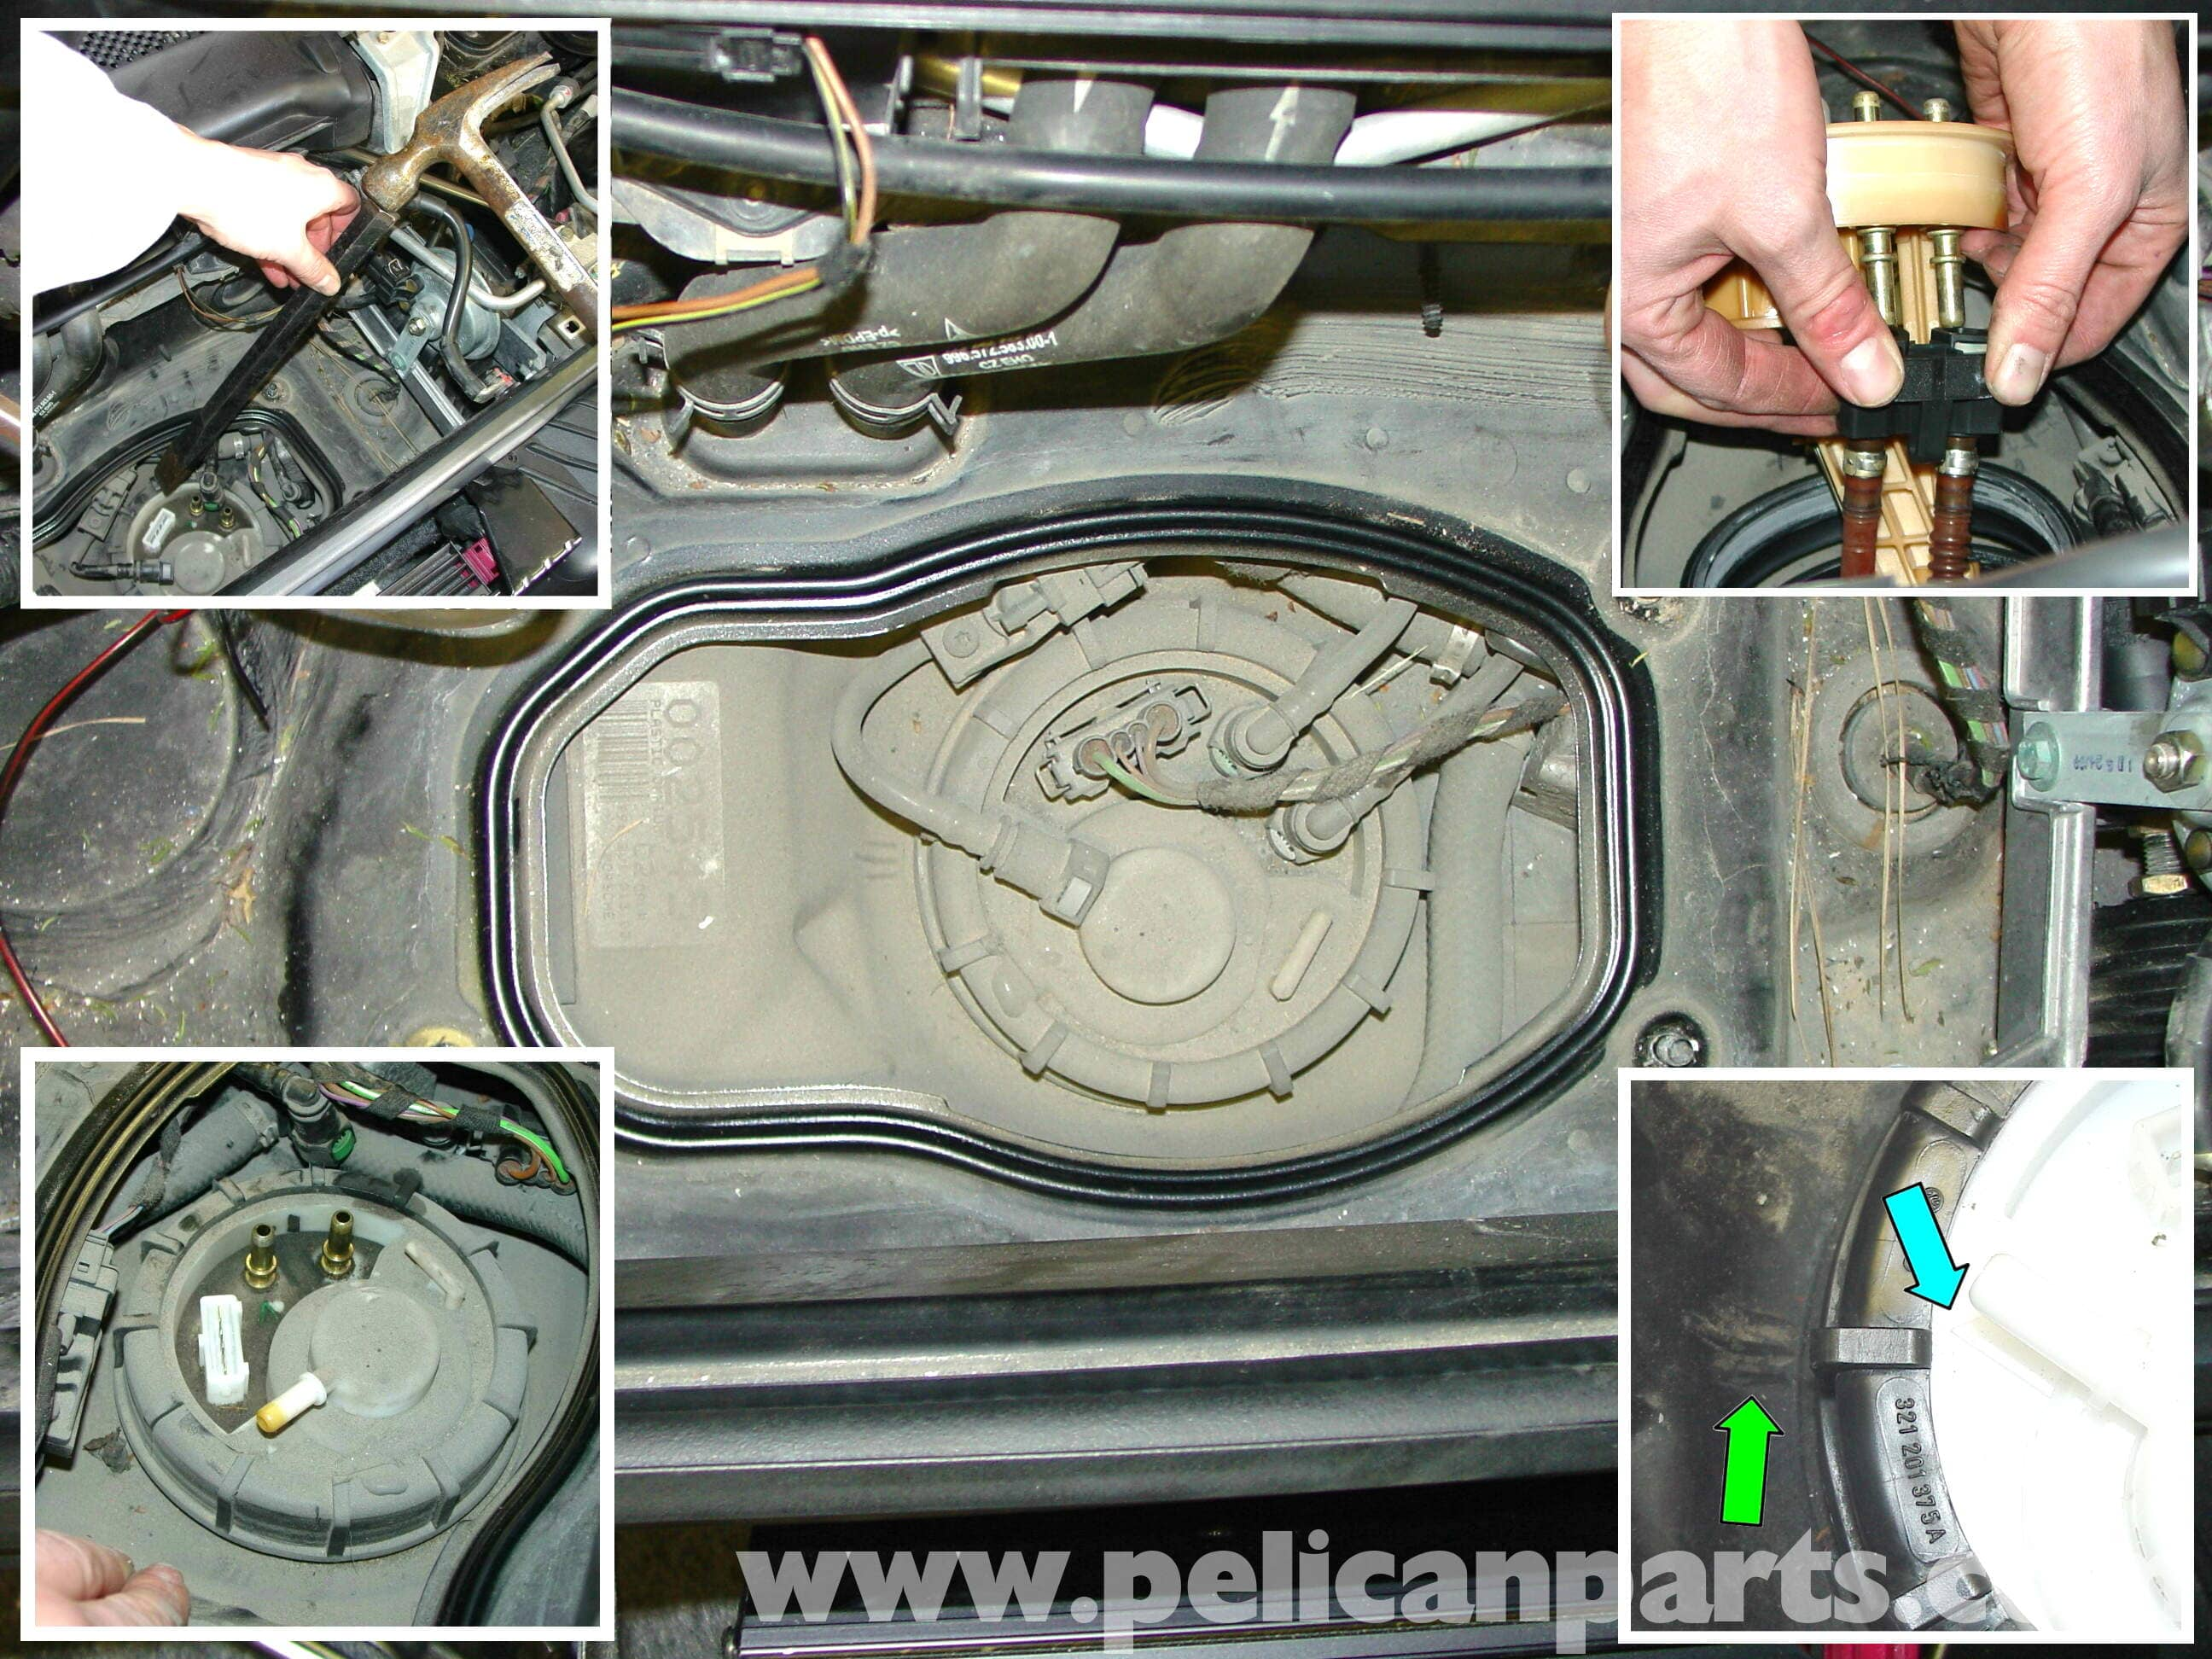 996 Fuel Gauge Wiring Guide And Troubleshooting Of Diagram Boxster Headlight Switch Porsche 911 Carrera Pump Replacement 1998 2005 997 Rh Pelicanparts Com Chevy Not Working